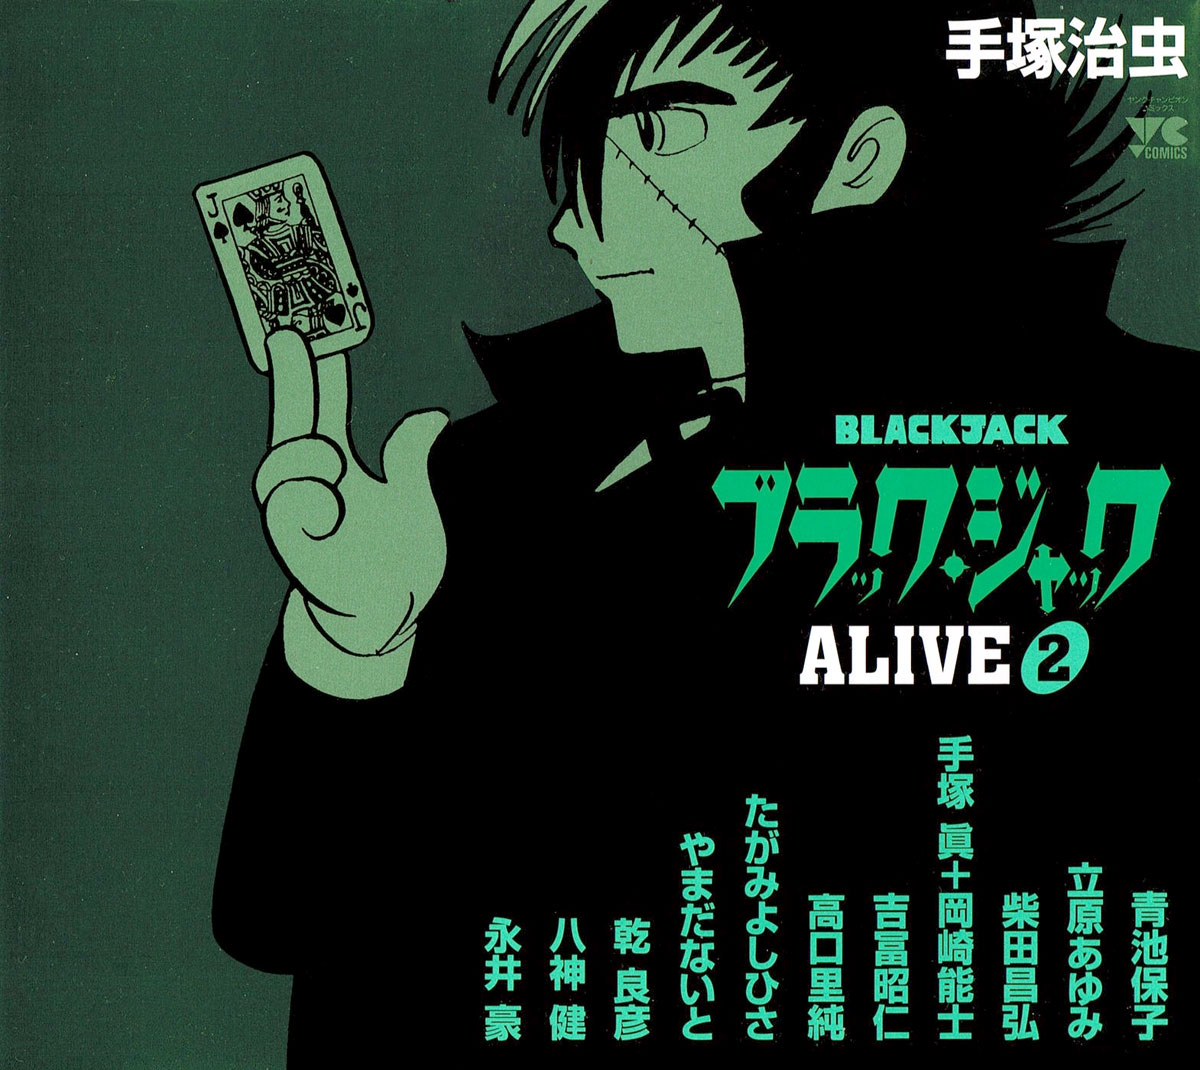 Blackjack final chapter